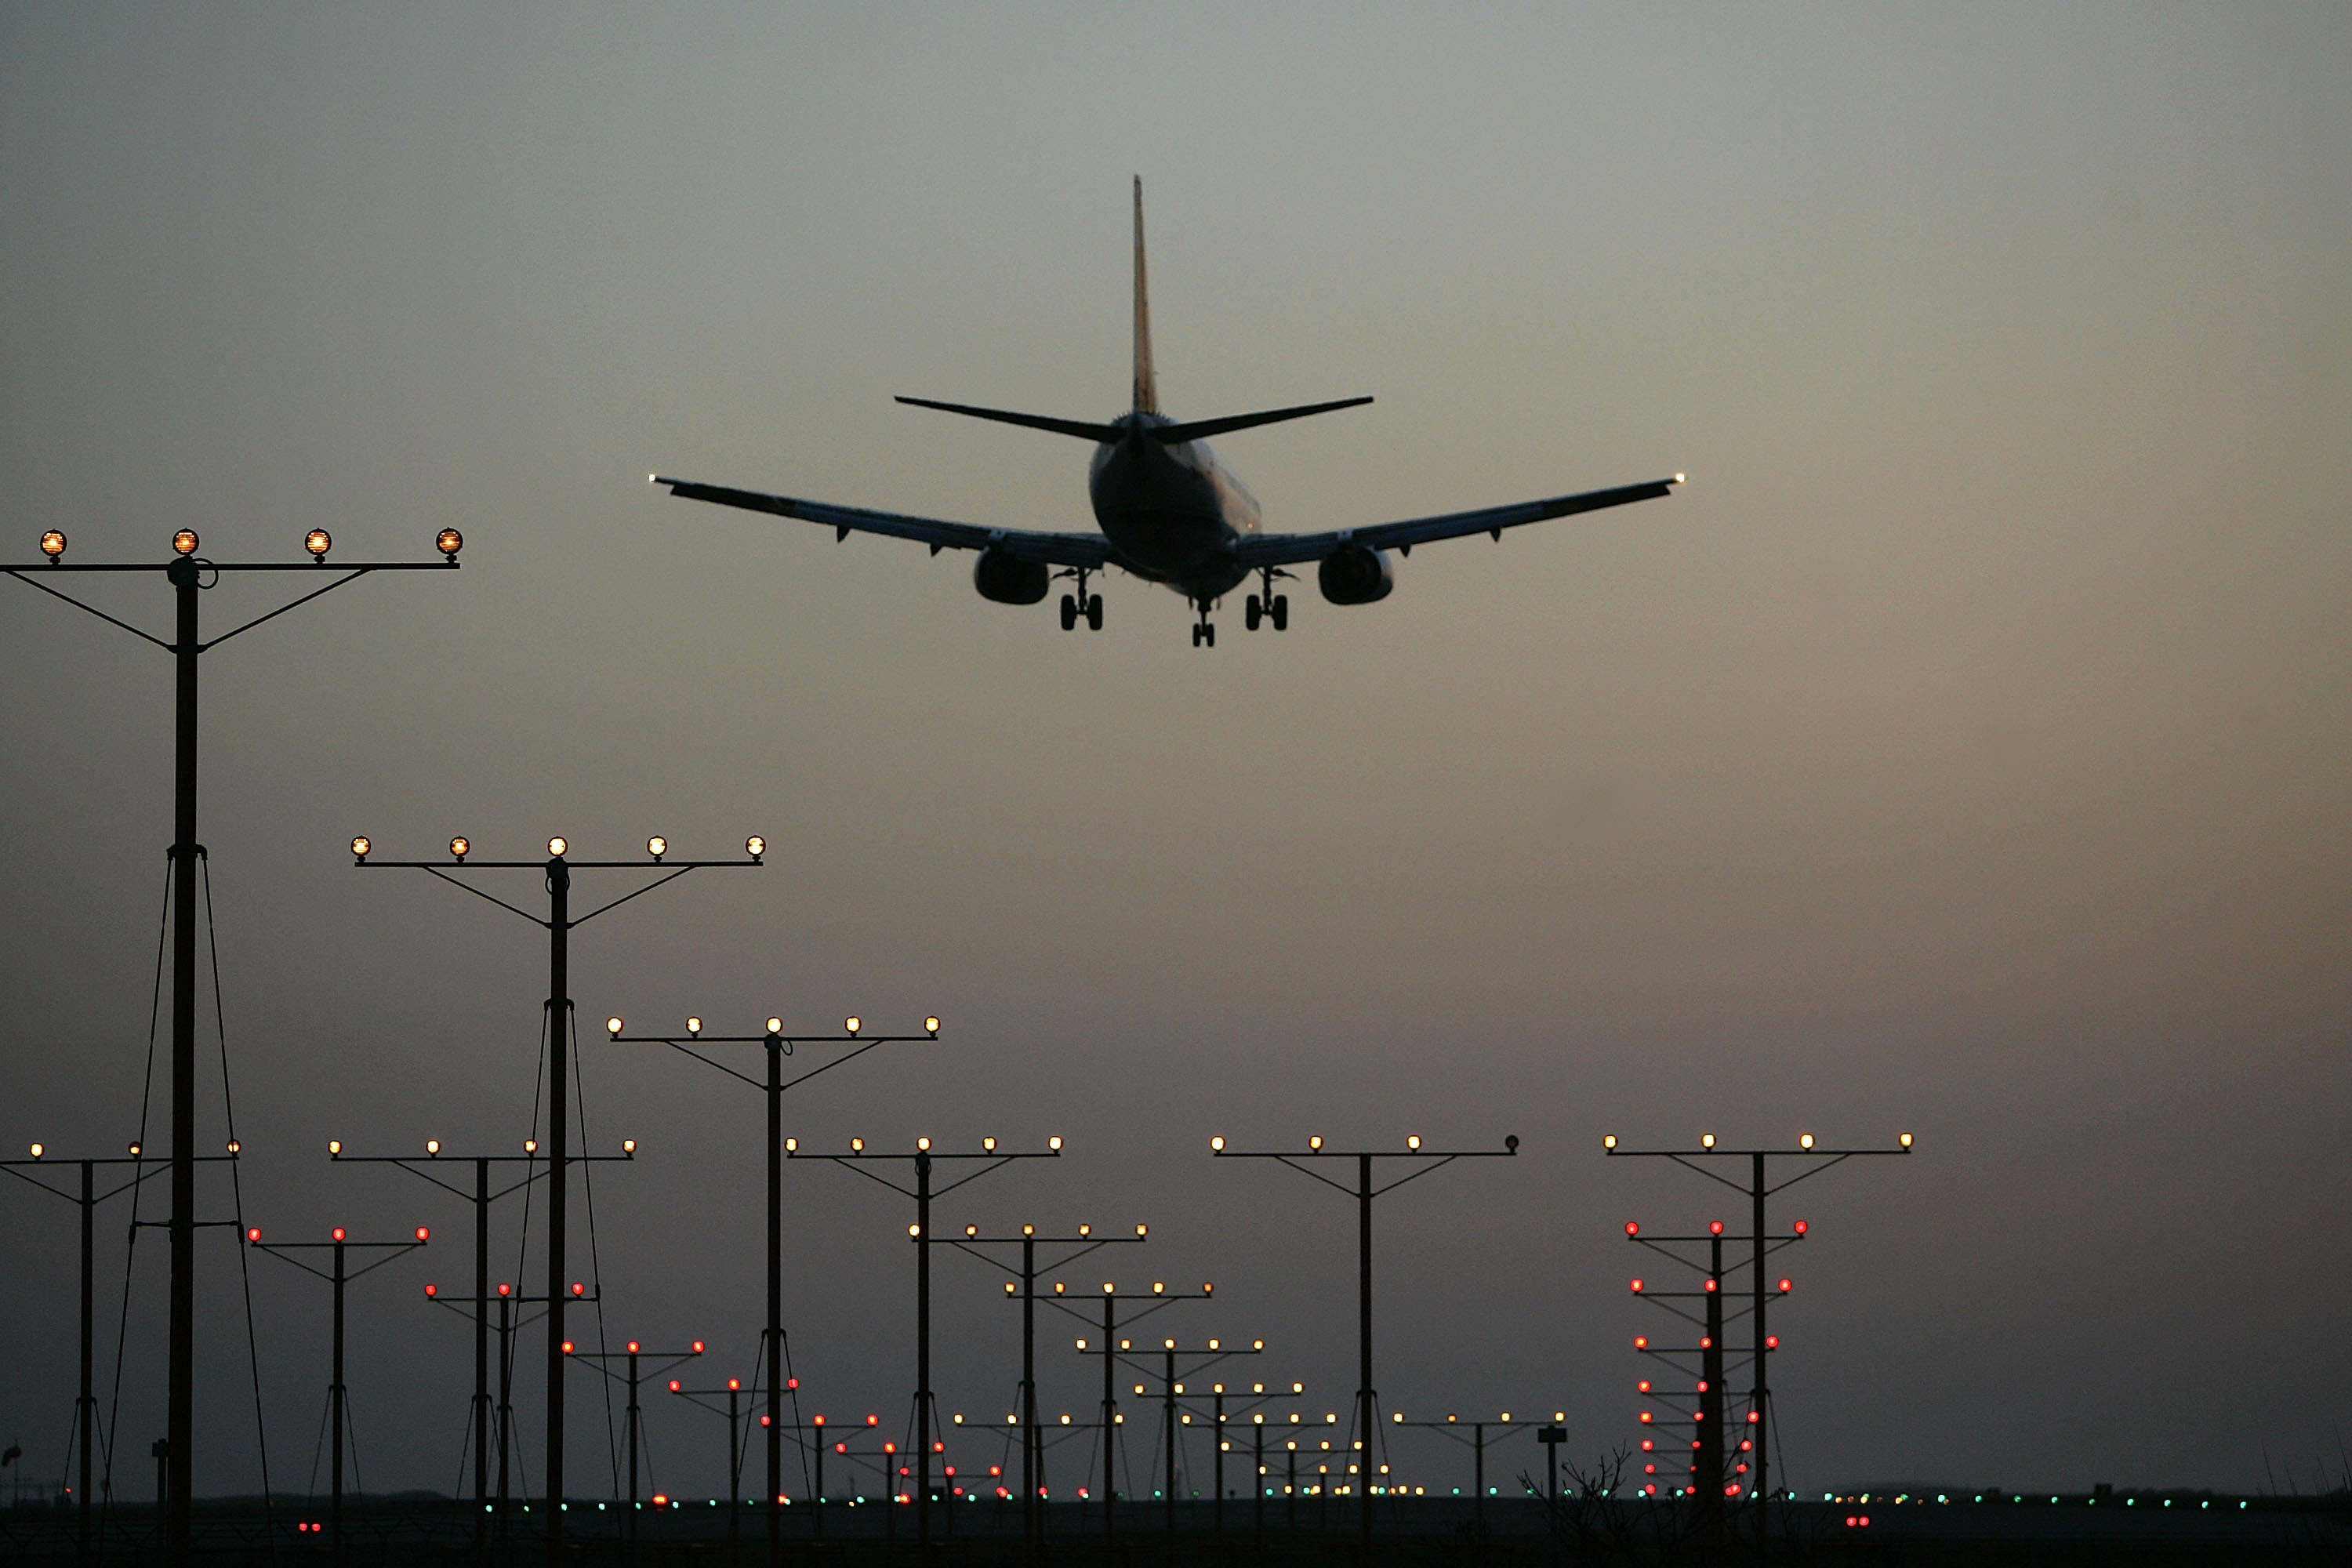 U.S. Airline Industry Struggles Through Turbulent Times